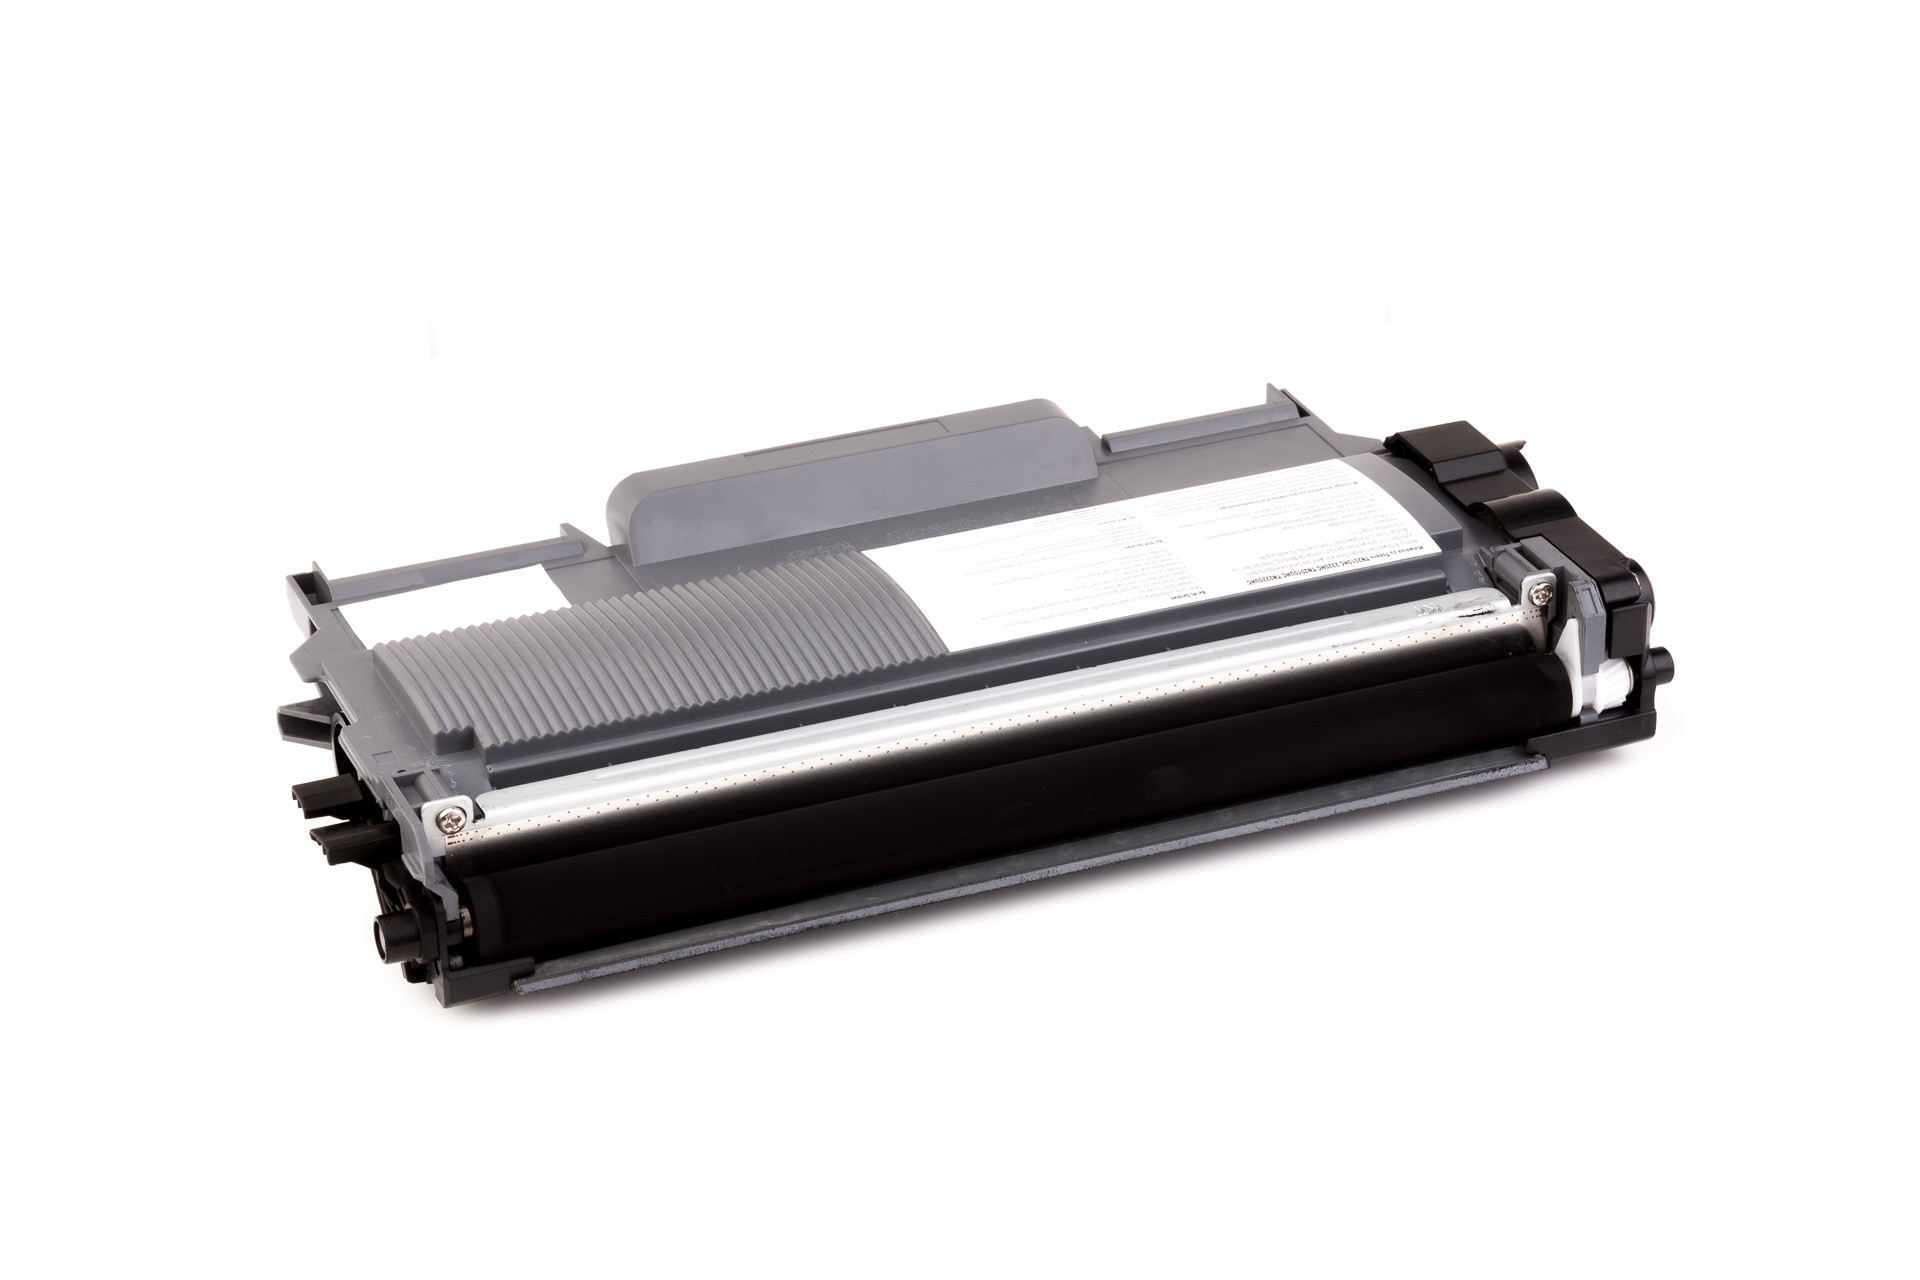 Cartucho de toner (alternativo) compatible a Brother HL-2240/2240D/2250/2250DN/2270/2270DW/DCP-7060/7060D/7065/7065DN/7070/7070DW //  TN2220 / TN 2220